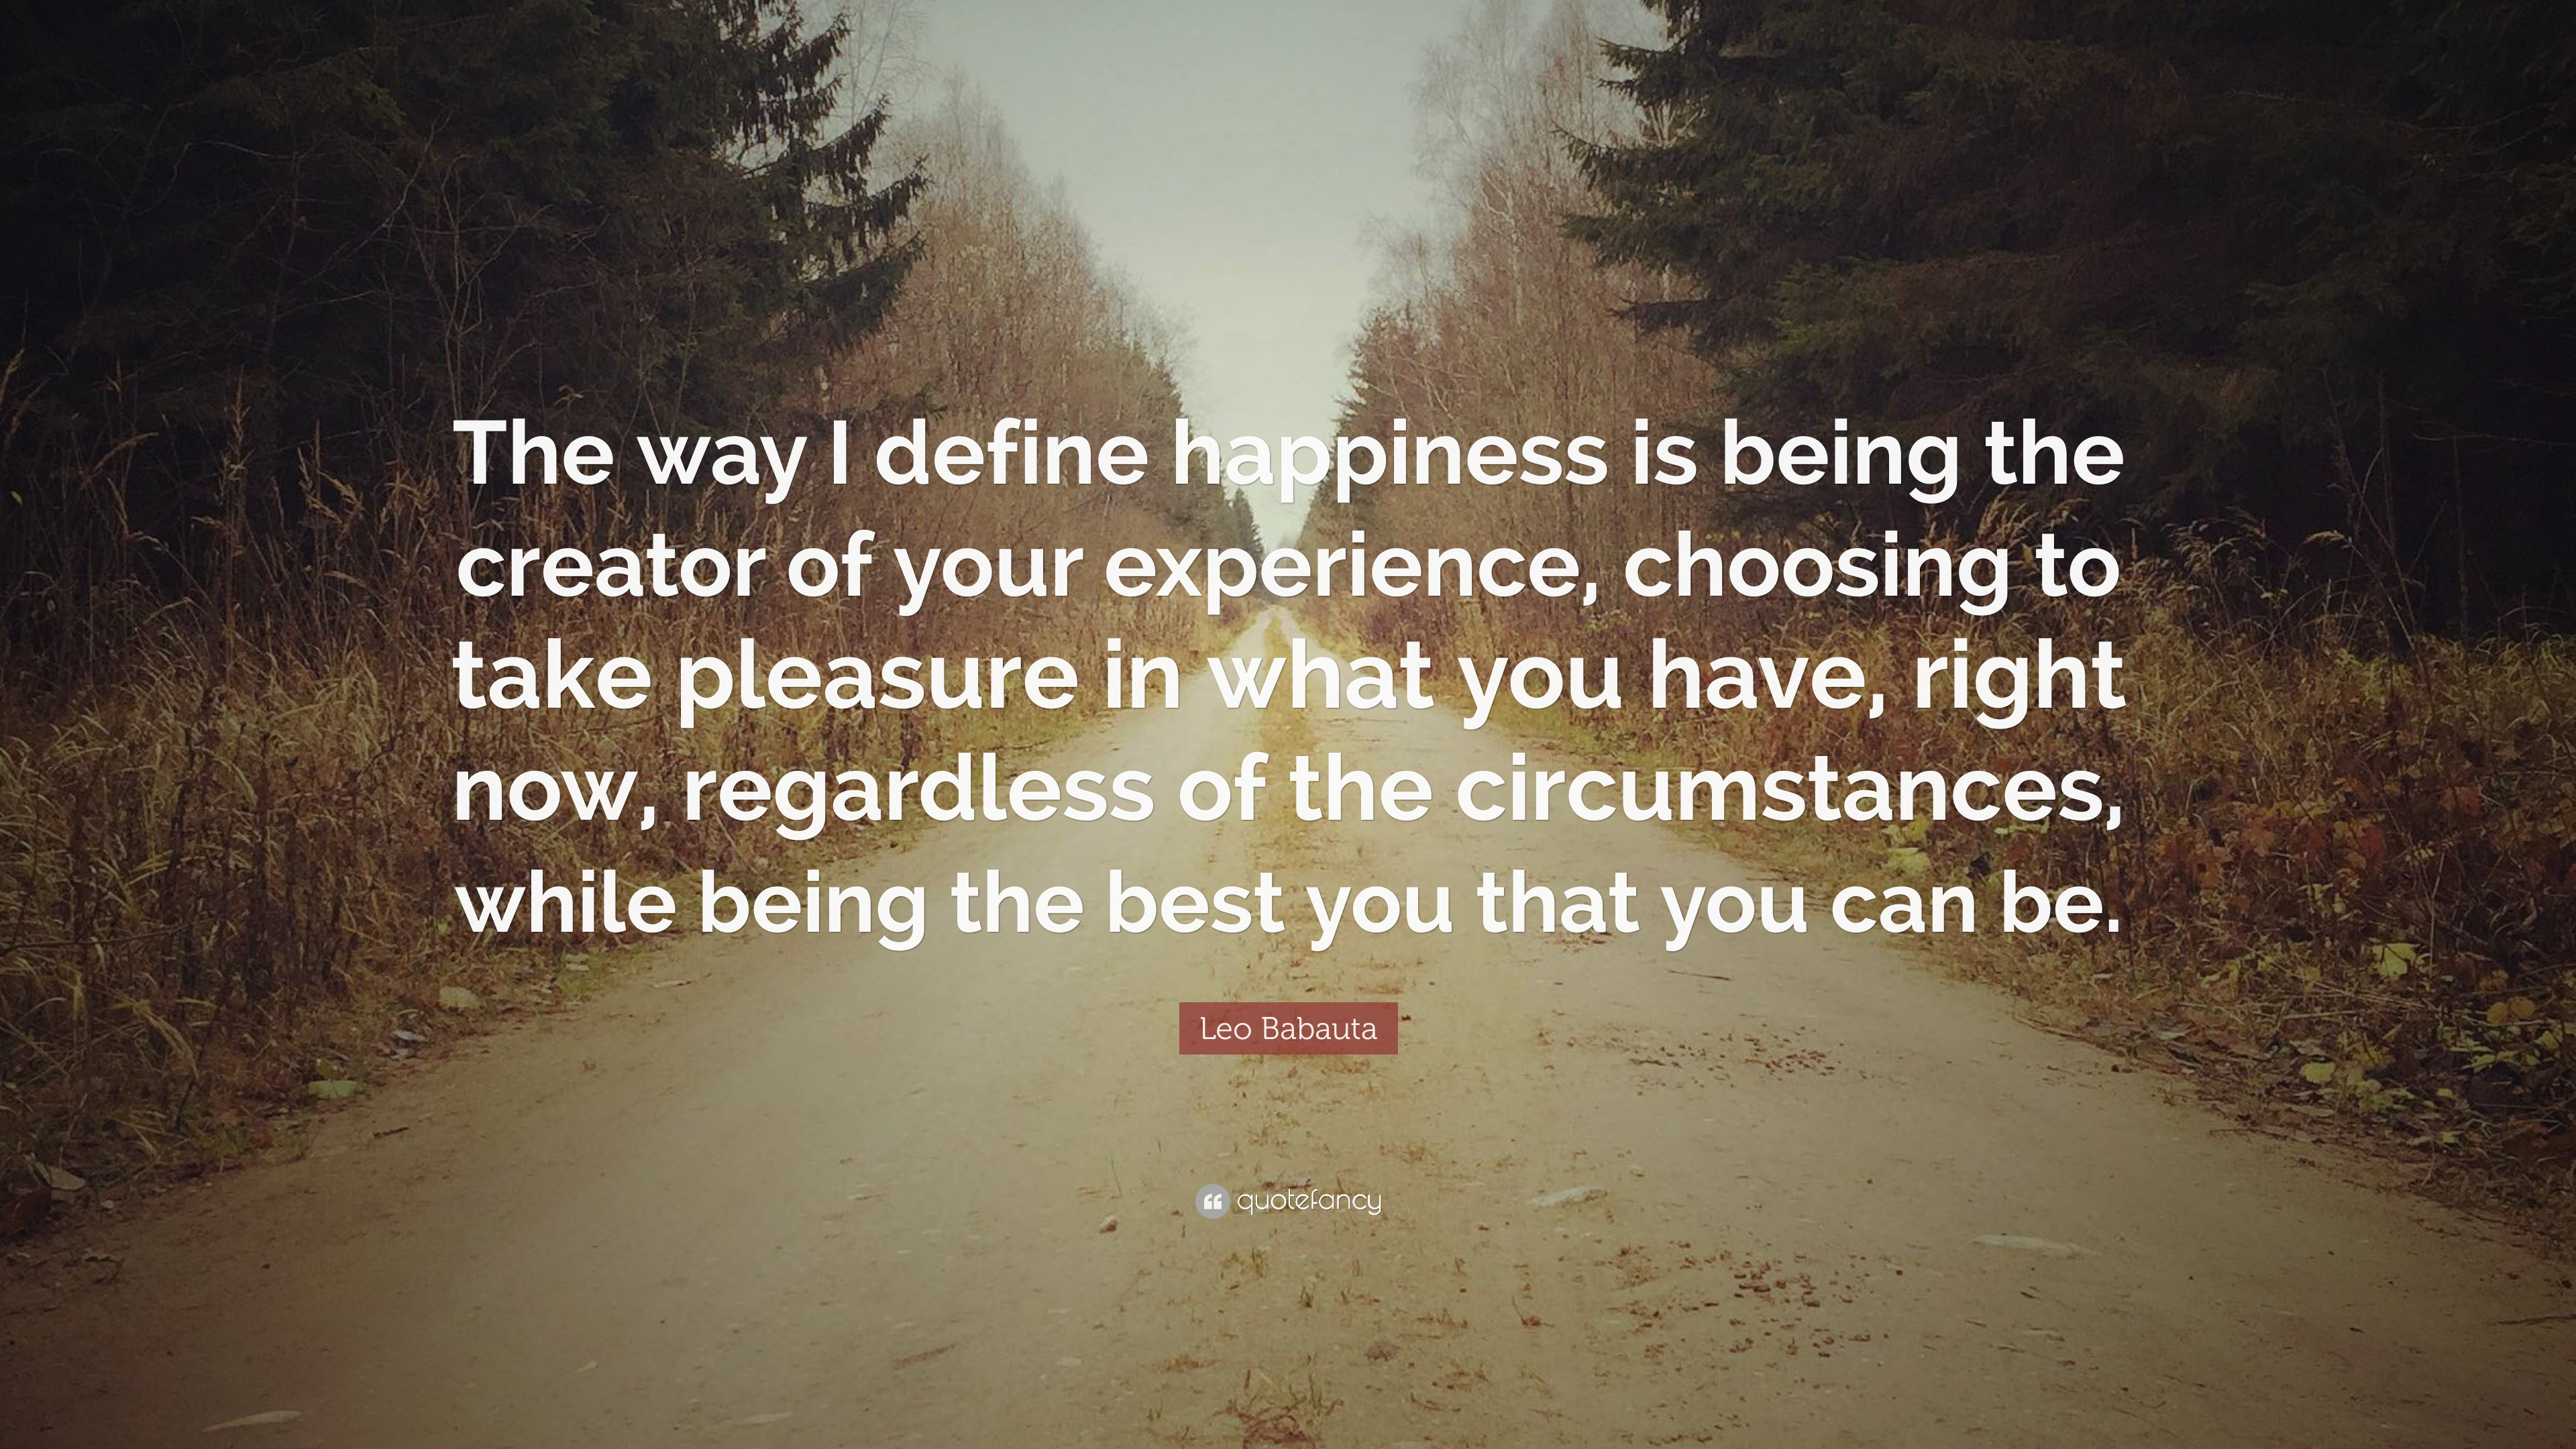 Leo Babauta Quote: U201cThe Way I Define Happiness Is Being The Creator Of Your